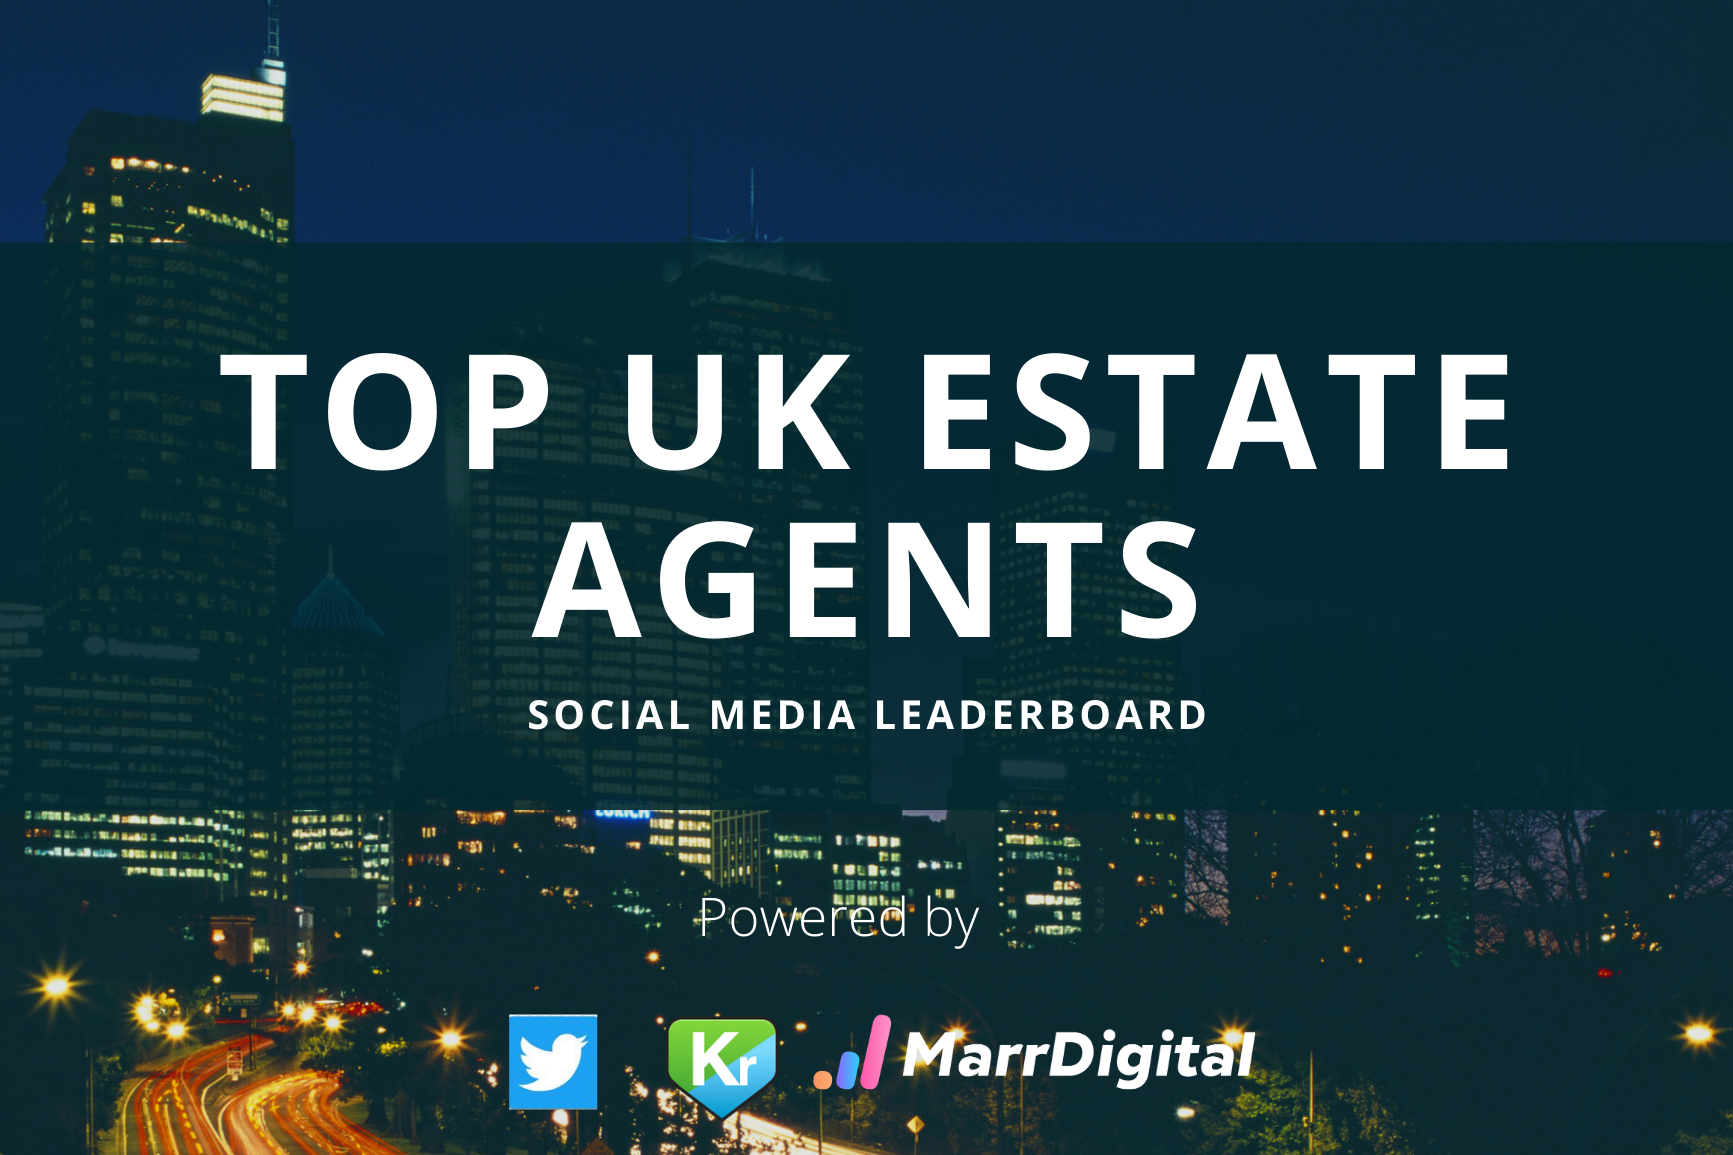 Top Uk Estate Agents